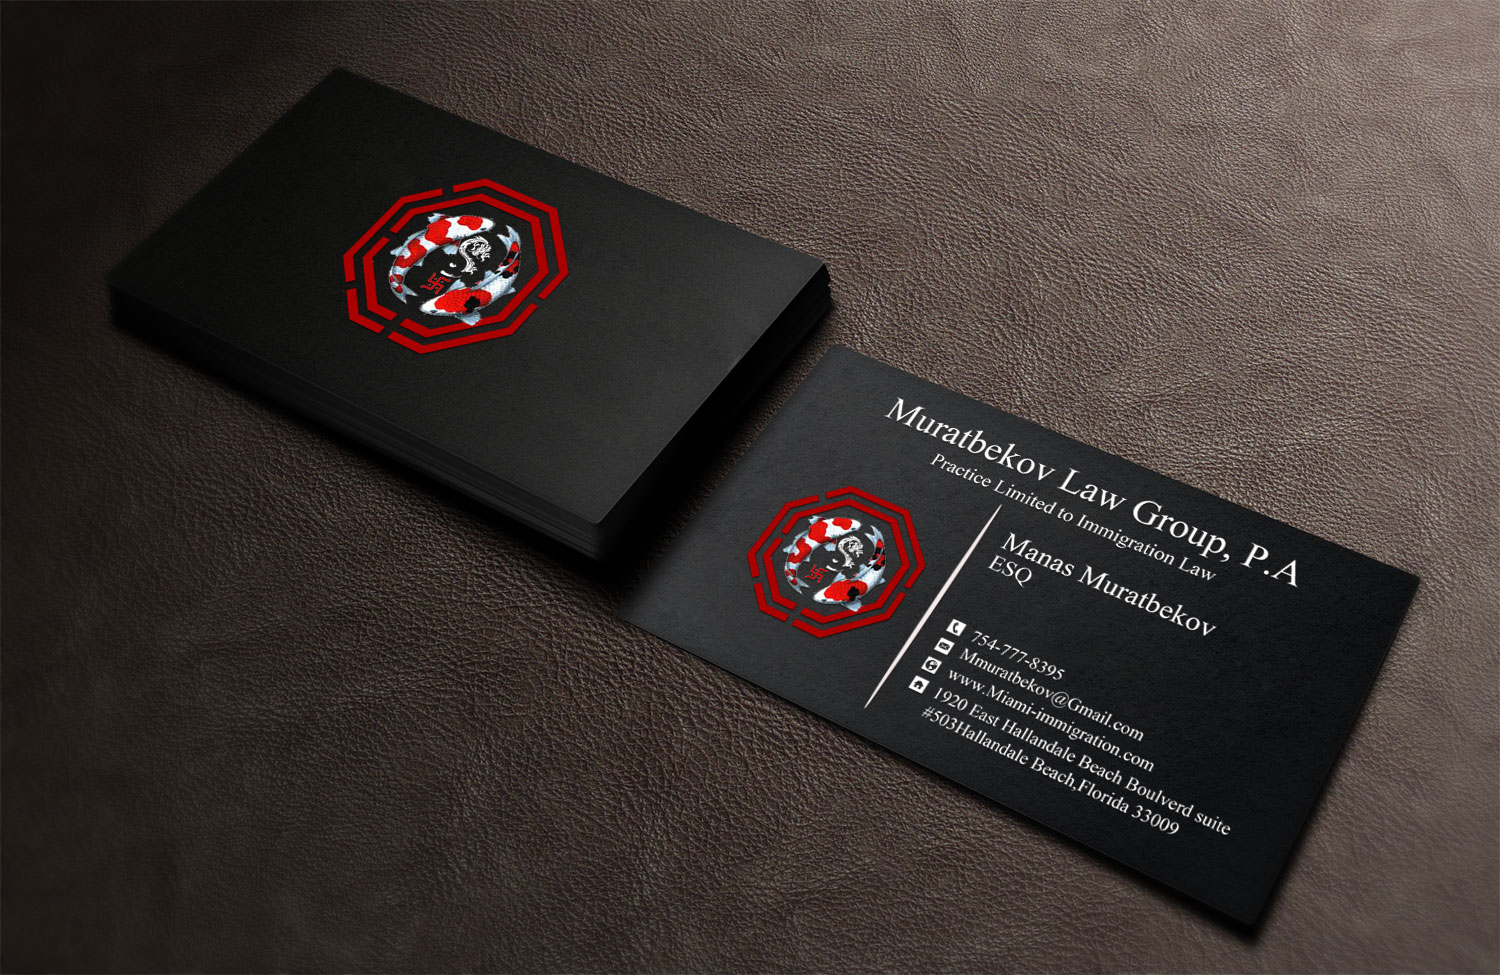 Excellent feng shui business card gallery business card ideas professional masculine business card design for muratbekov law colourmoves